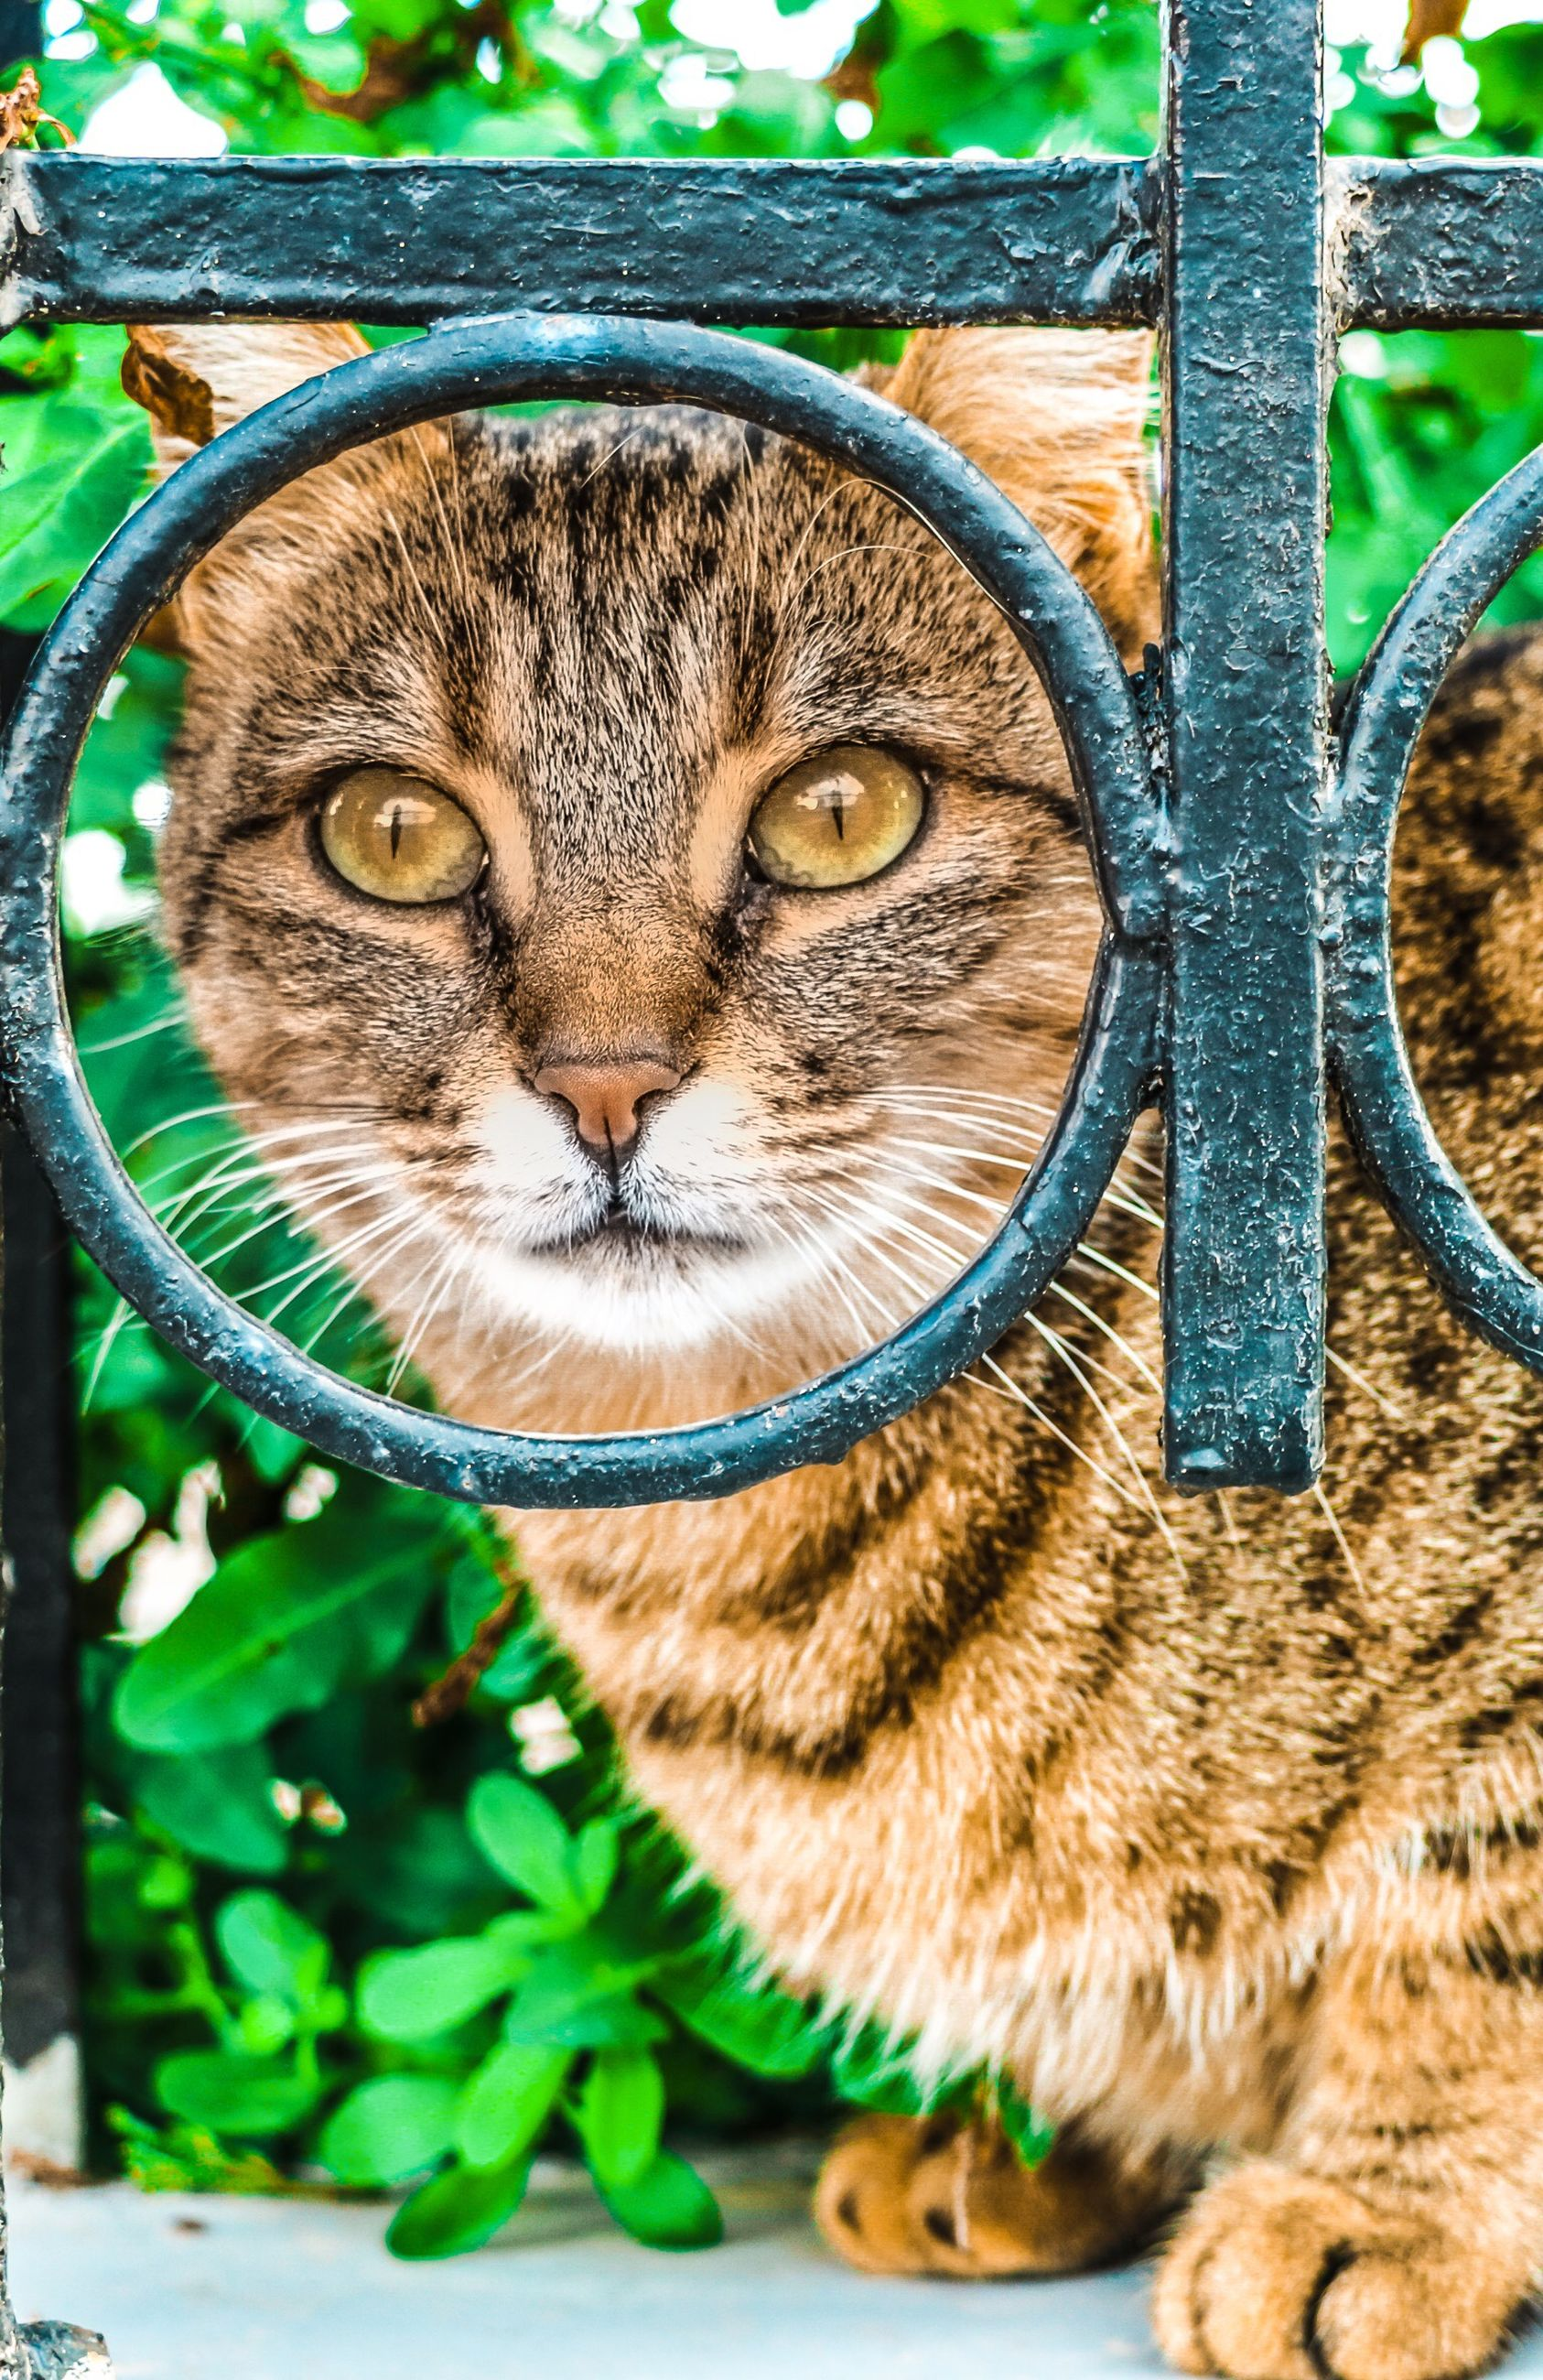 pets, cat, domestic cat, feline, mammal, domestic, domestic animals, one animal, vertebrate, looking at camera, portrait, no people, close-up, day, whisker, animal body part, sitting, animal eye